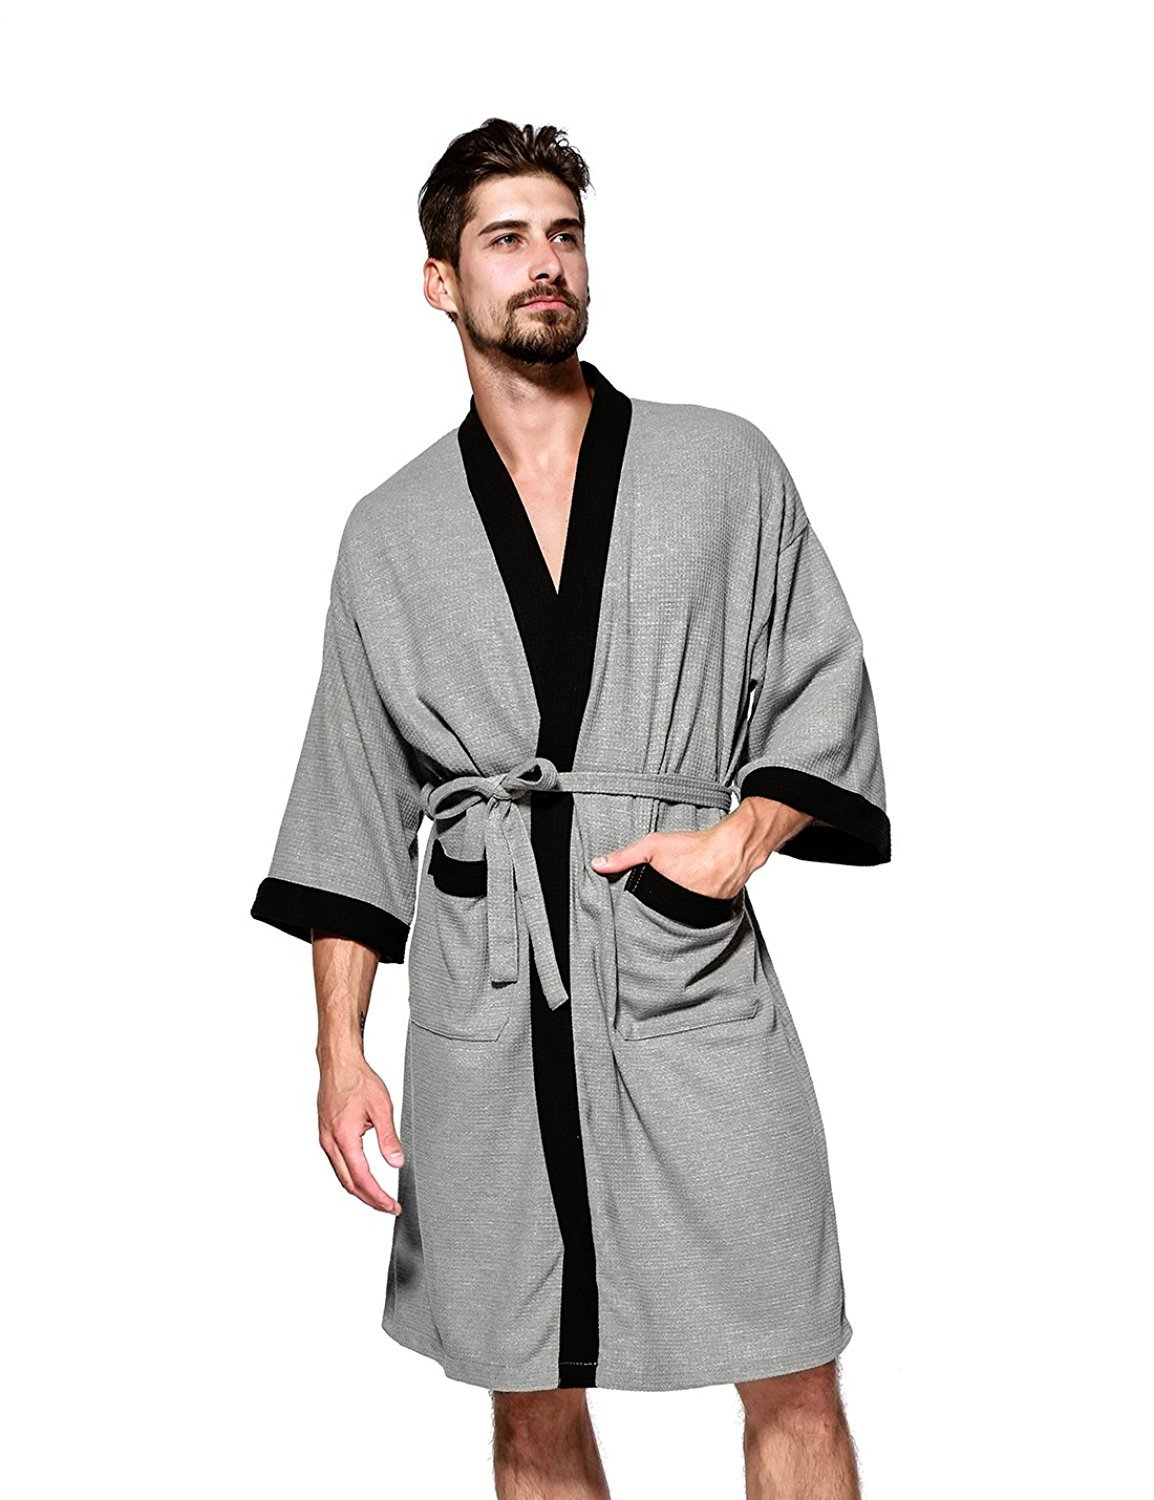 Jearey Men's Kimono Robe Cotton Waffle Spa Bathrobe Lightweight Soft Knee Length Sleepwear with Pockets(Grey-Black, L)